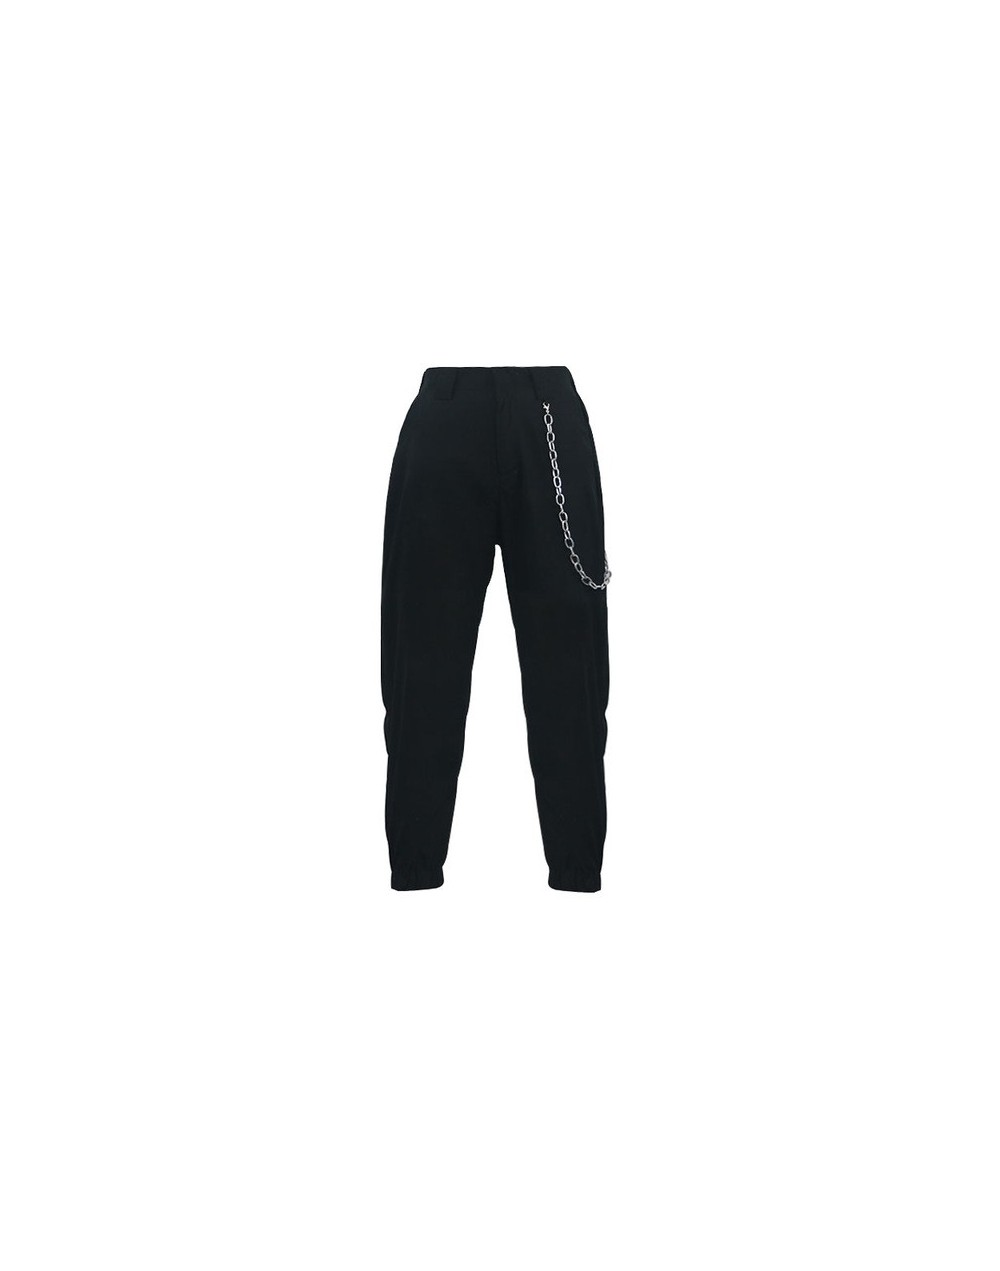 Streetwear Cargo Pants Women Casual Black High Waist Loose Female Trousers With Chains Ladies Harem Pants Dropshipping - bla...